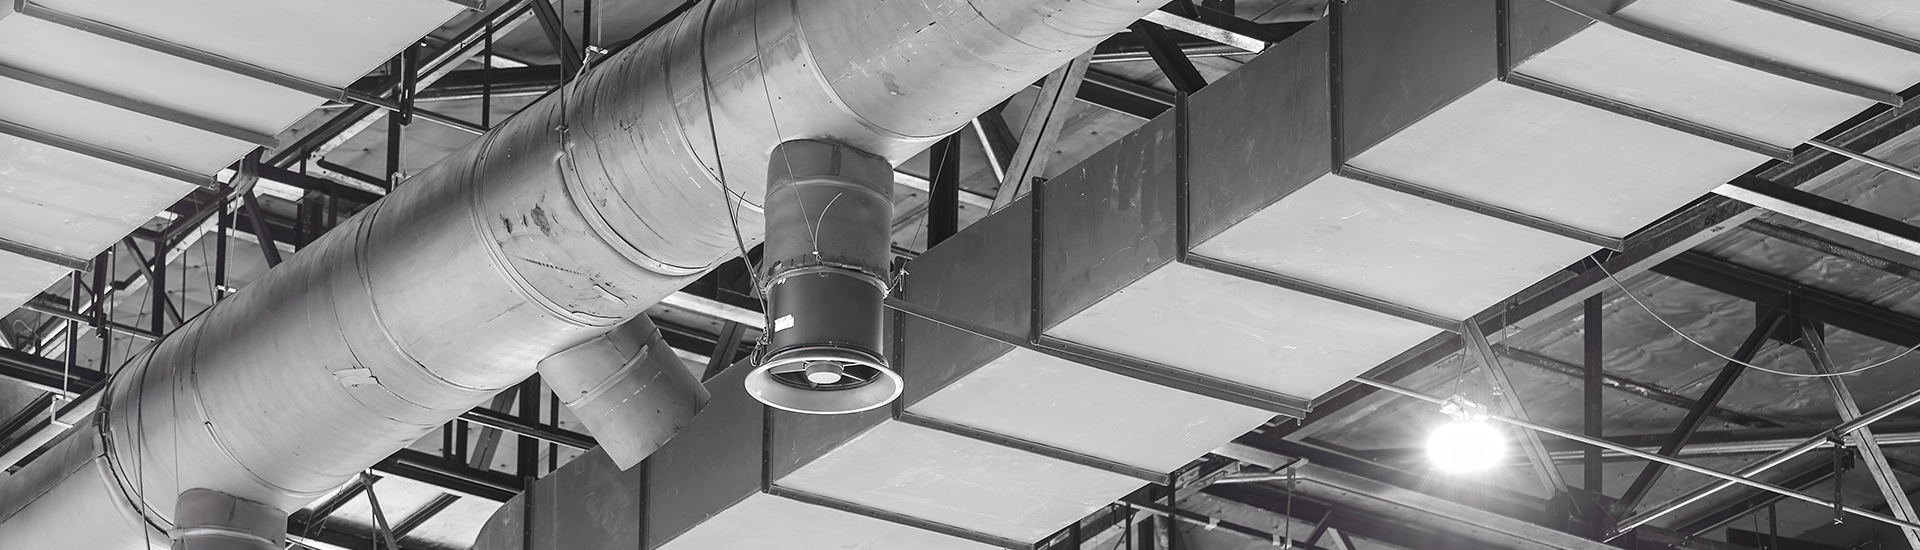 Commercial Air Duct Cleaning in Baltimore, Alexandria VA, Fairfax